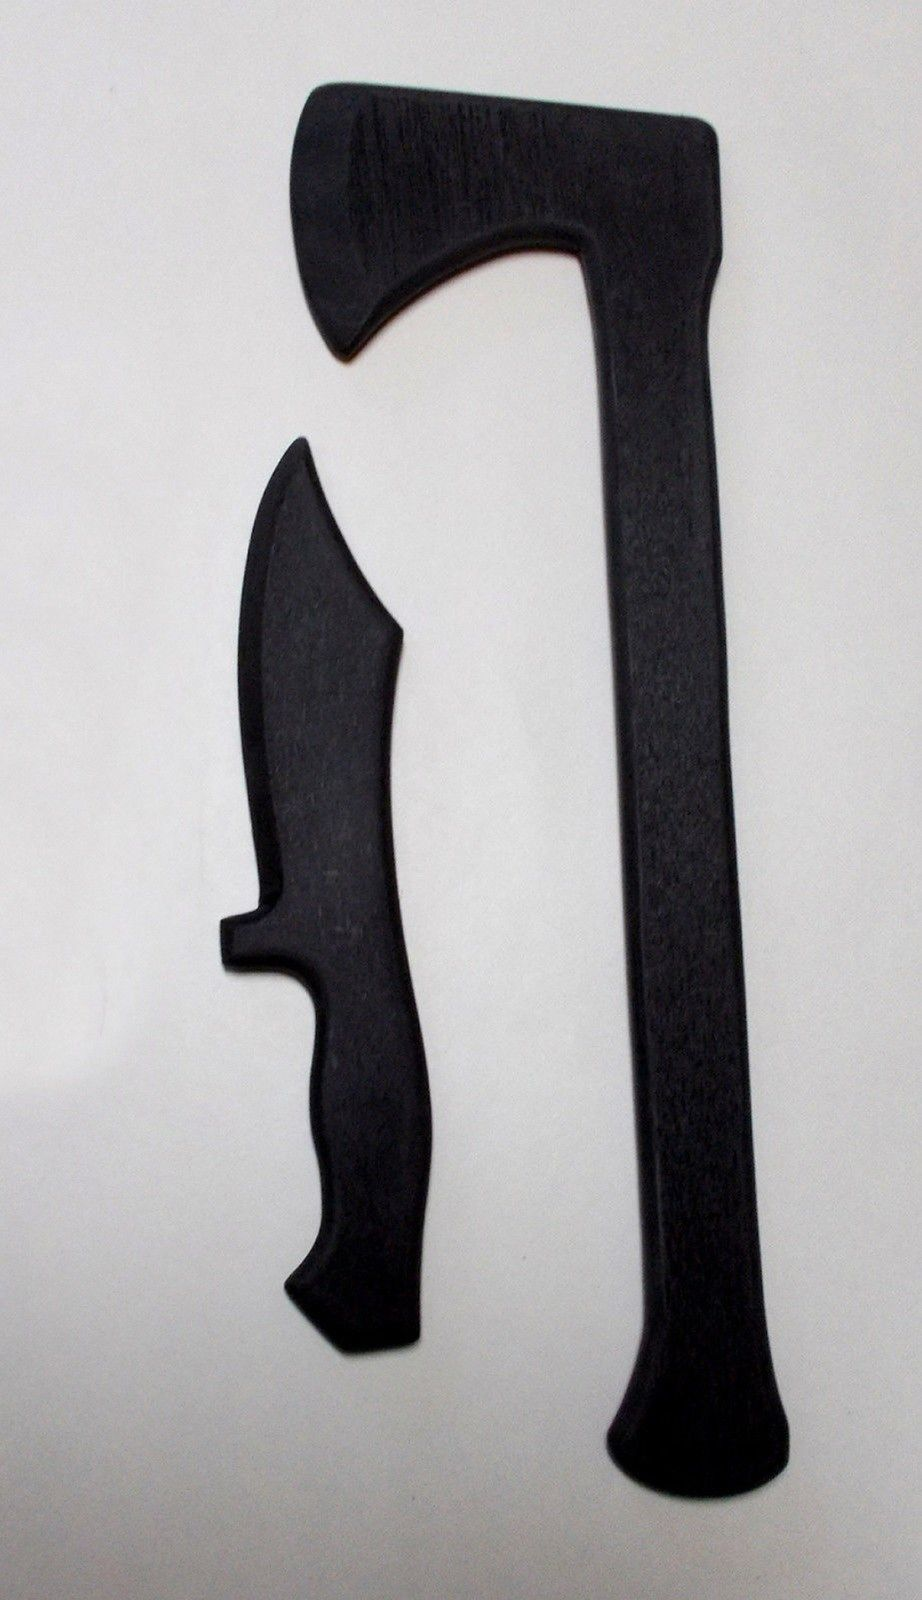 Tactical Tomahawk Trainer & Training Knife Black Ops Combat Instruction Set MMA